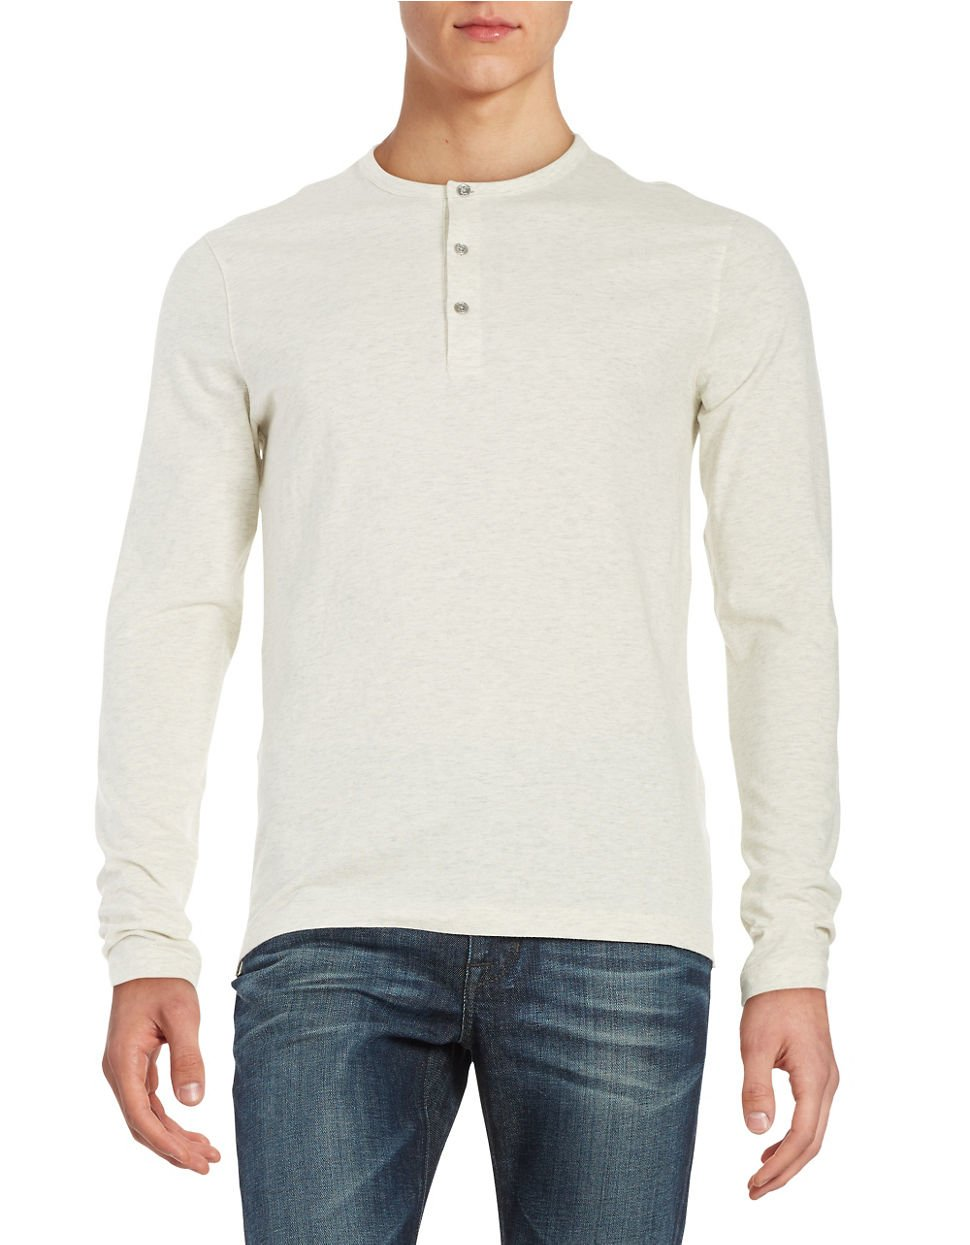 The 11 Best Henley Shirts for Men to Wear This Fall. From brands like worldofweapons.tk, Bonobos, and Theory. look of this henley and it is a made out of soft pima cotton jersey fabric so it can easily.